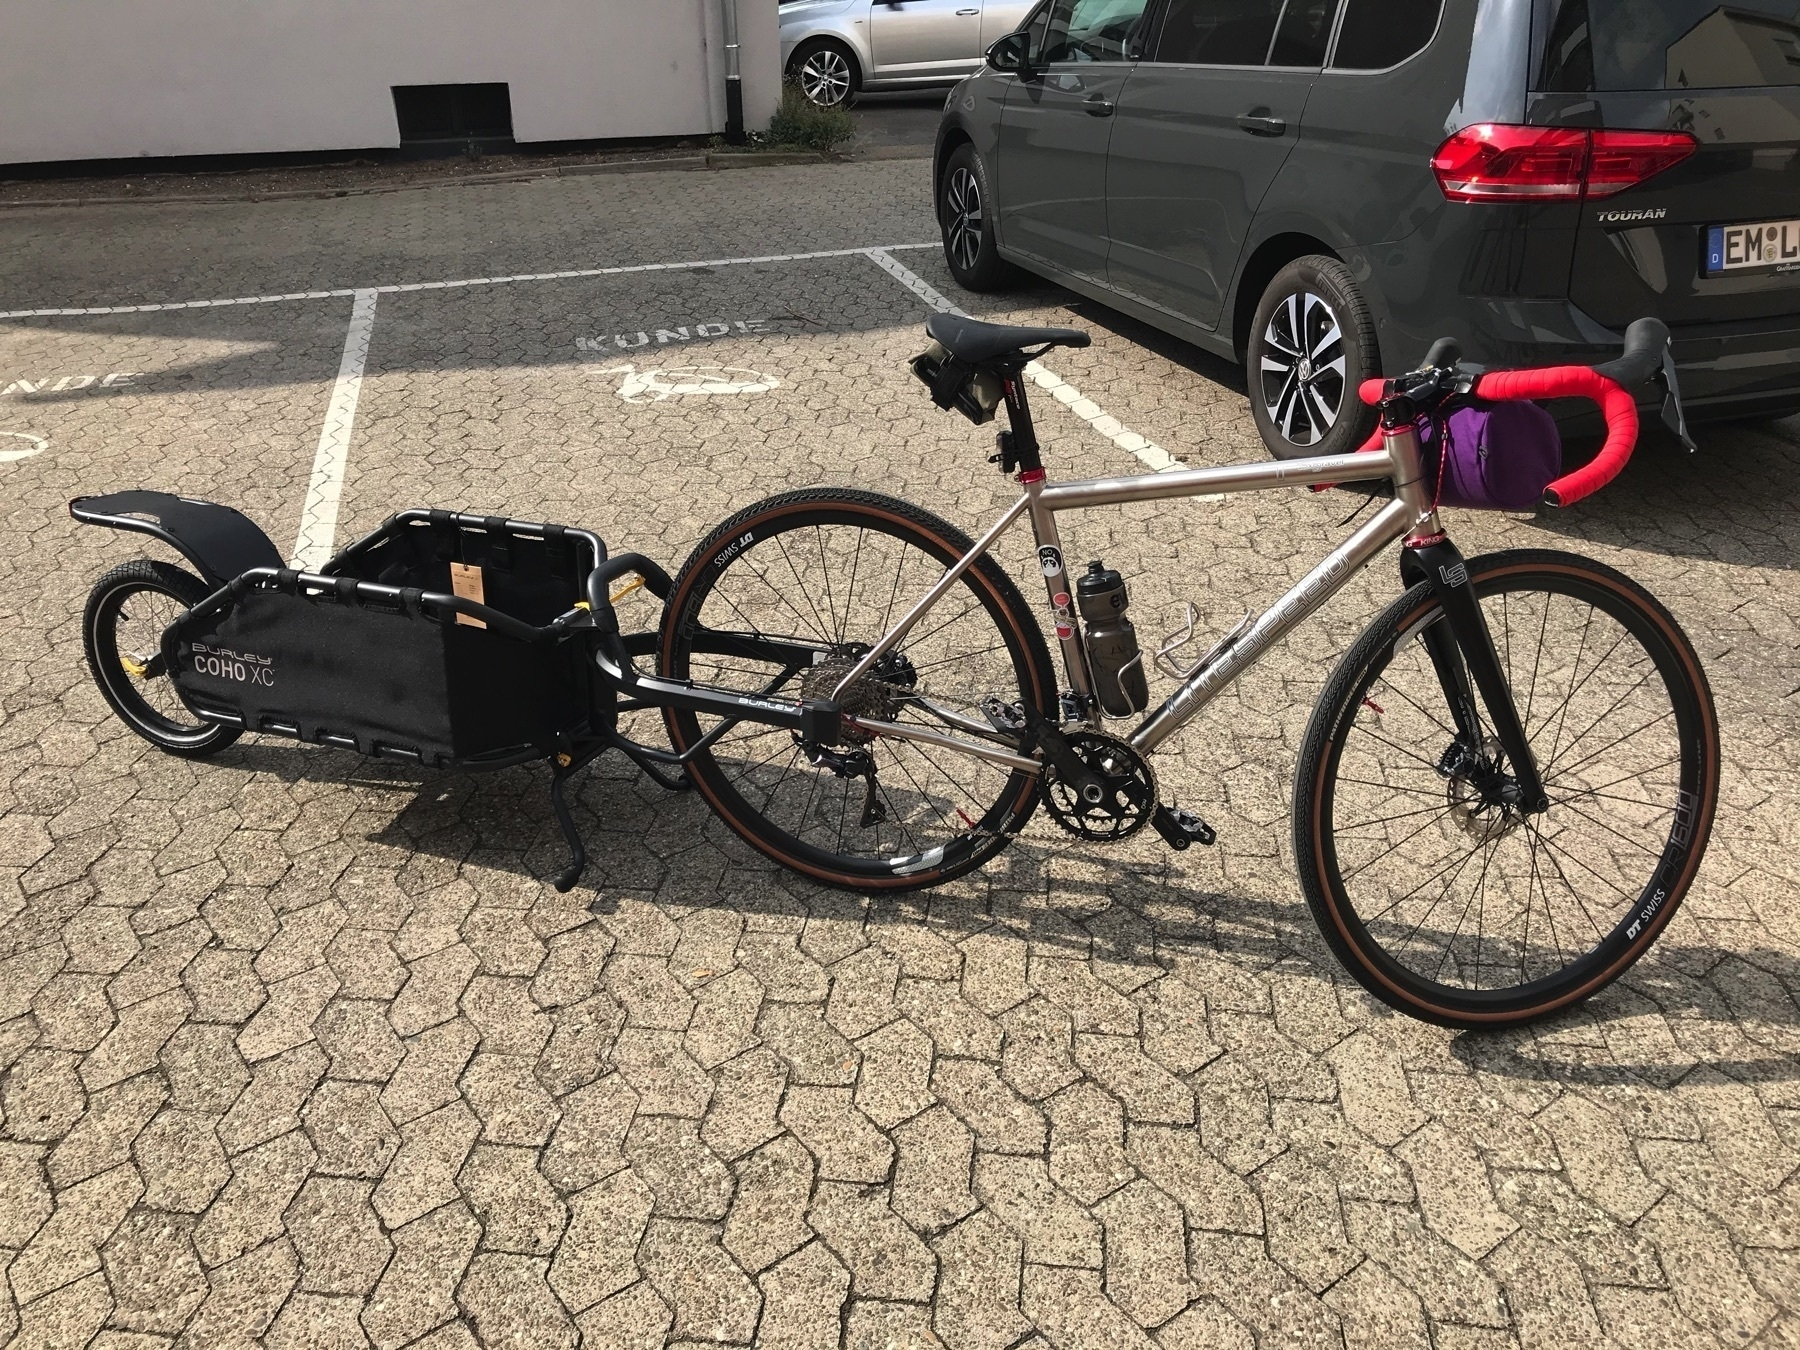 Drop bar, titanium gravel bike with a single-wheel cargo trailer attached to the rear axle in a parking lot.